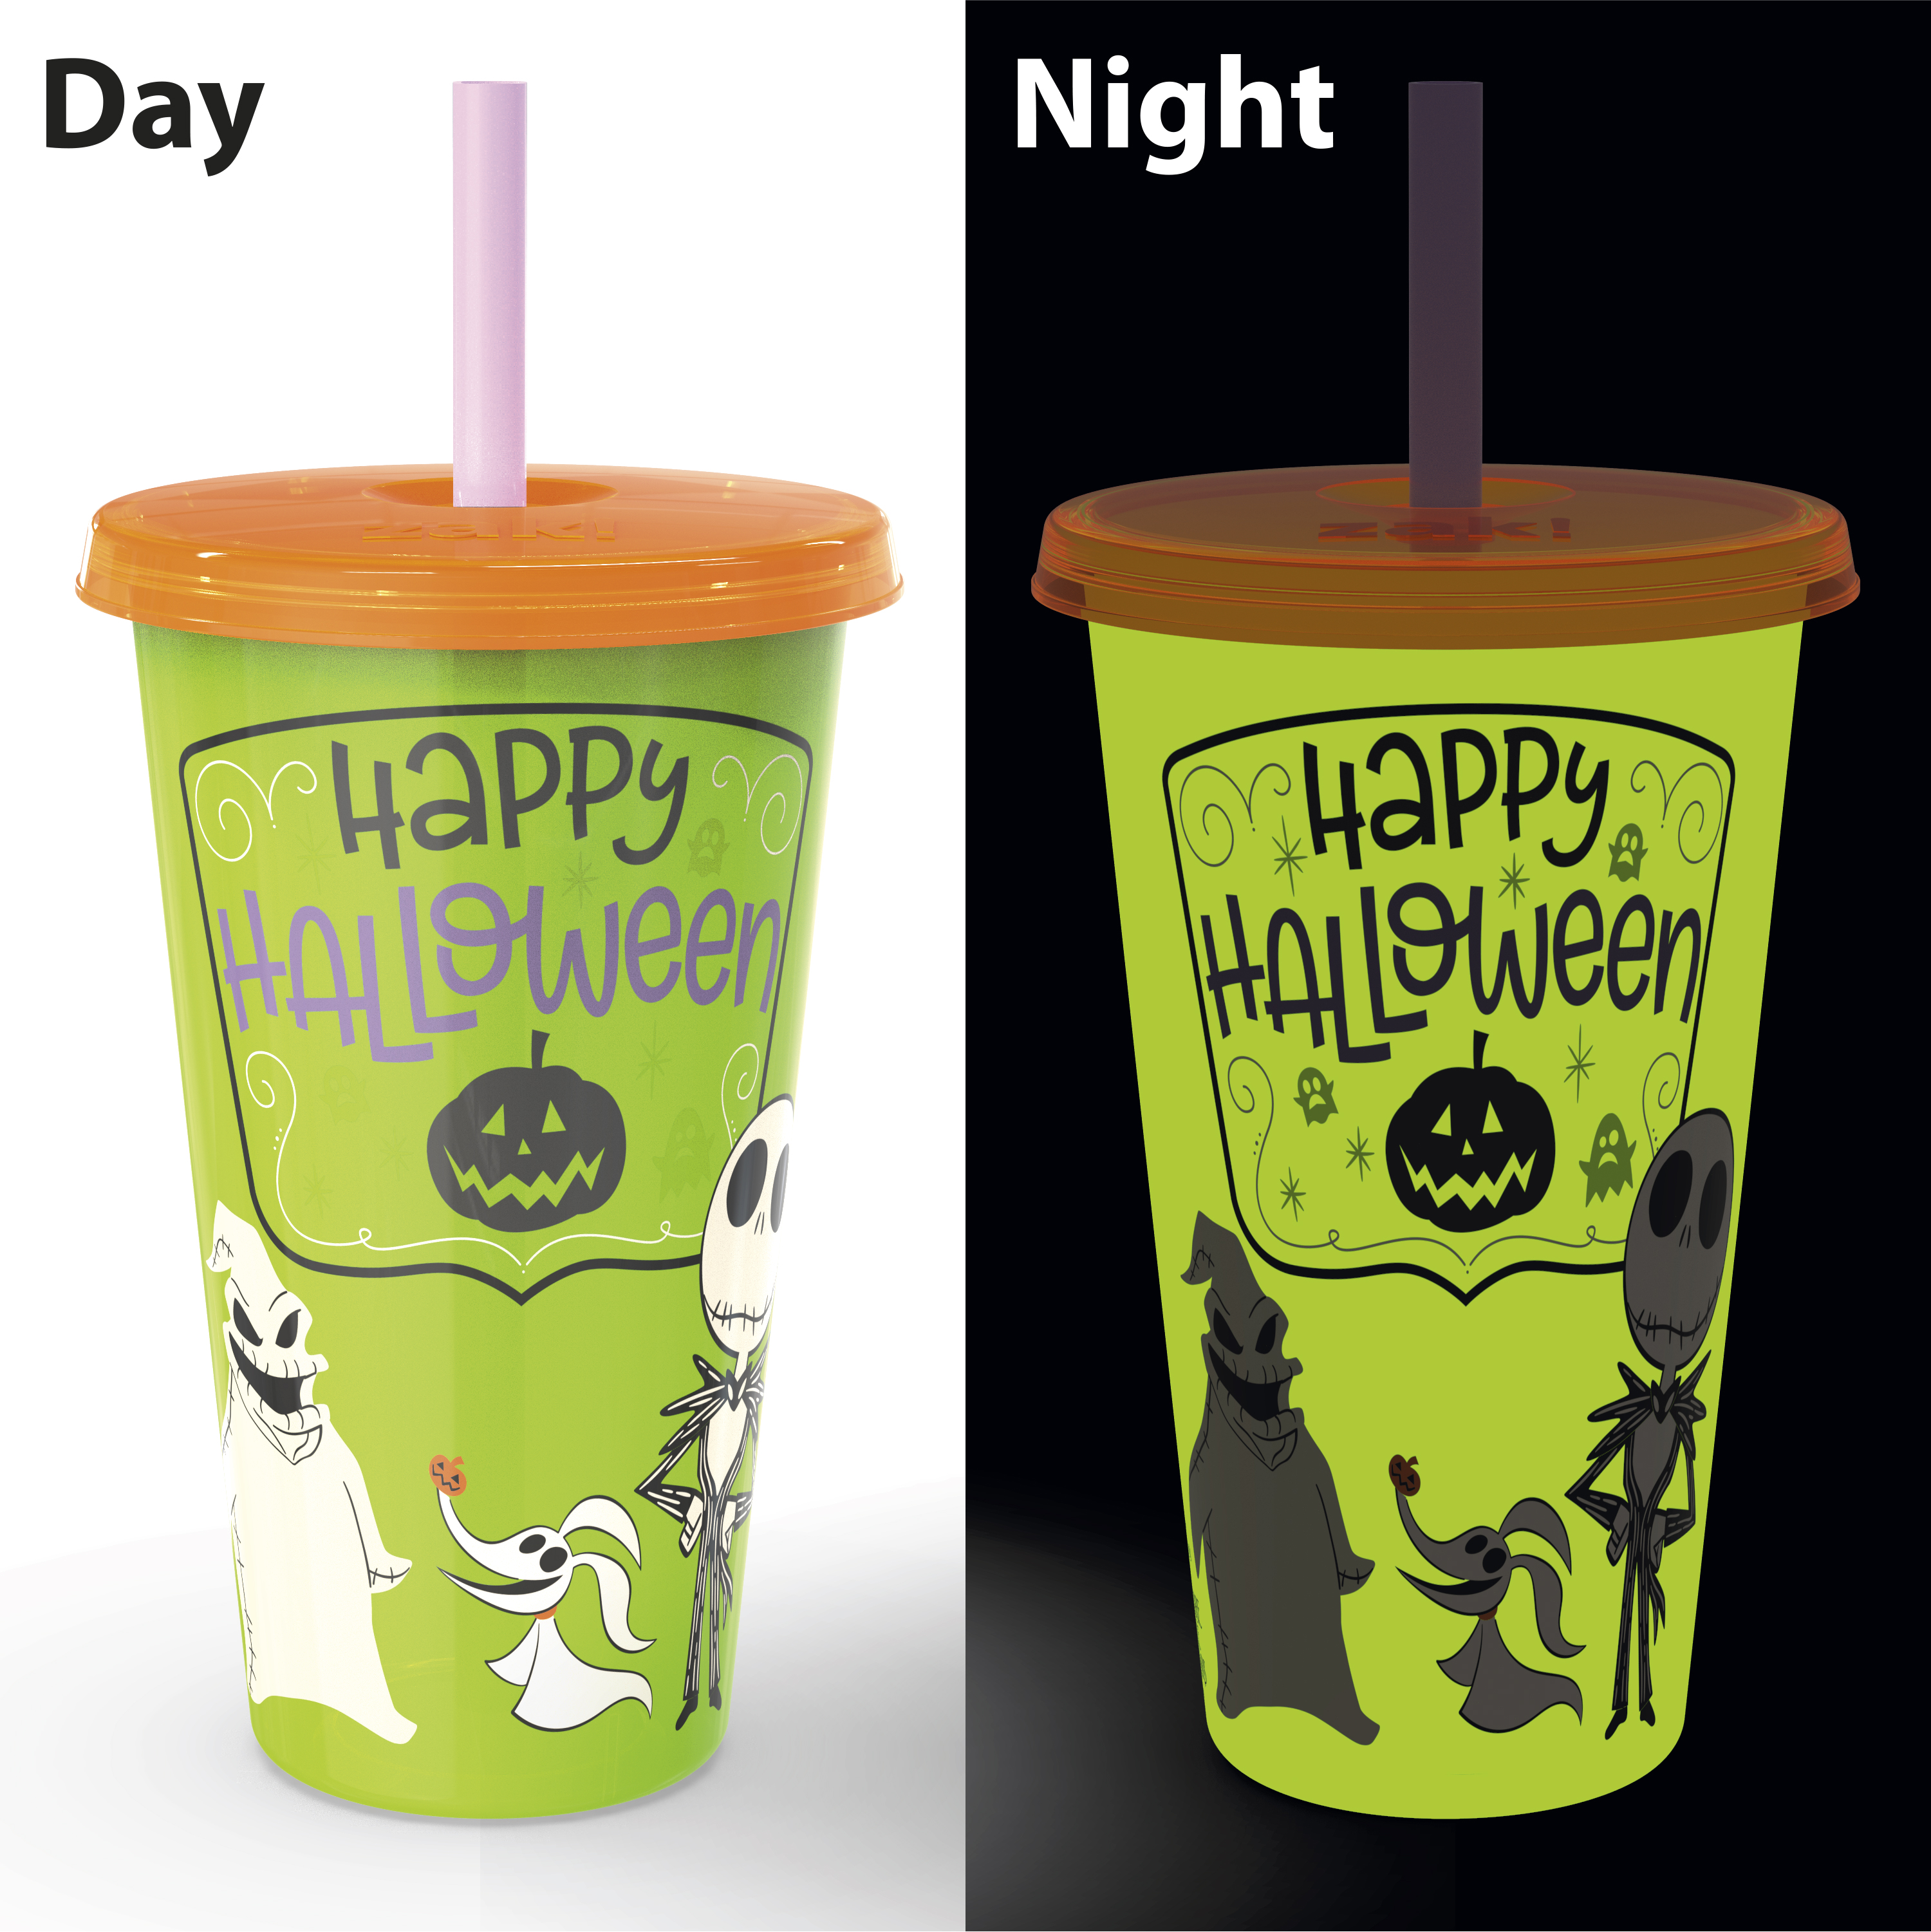 The Nightmare Before Christmas 24 ounce Reusable Plastic Kids Tumbler, Jack Skellington, Oogie Boogie & Zero, 4-piece set slideshow image 5